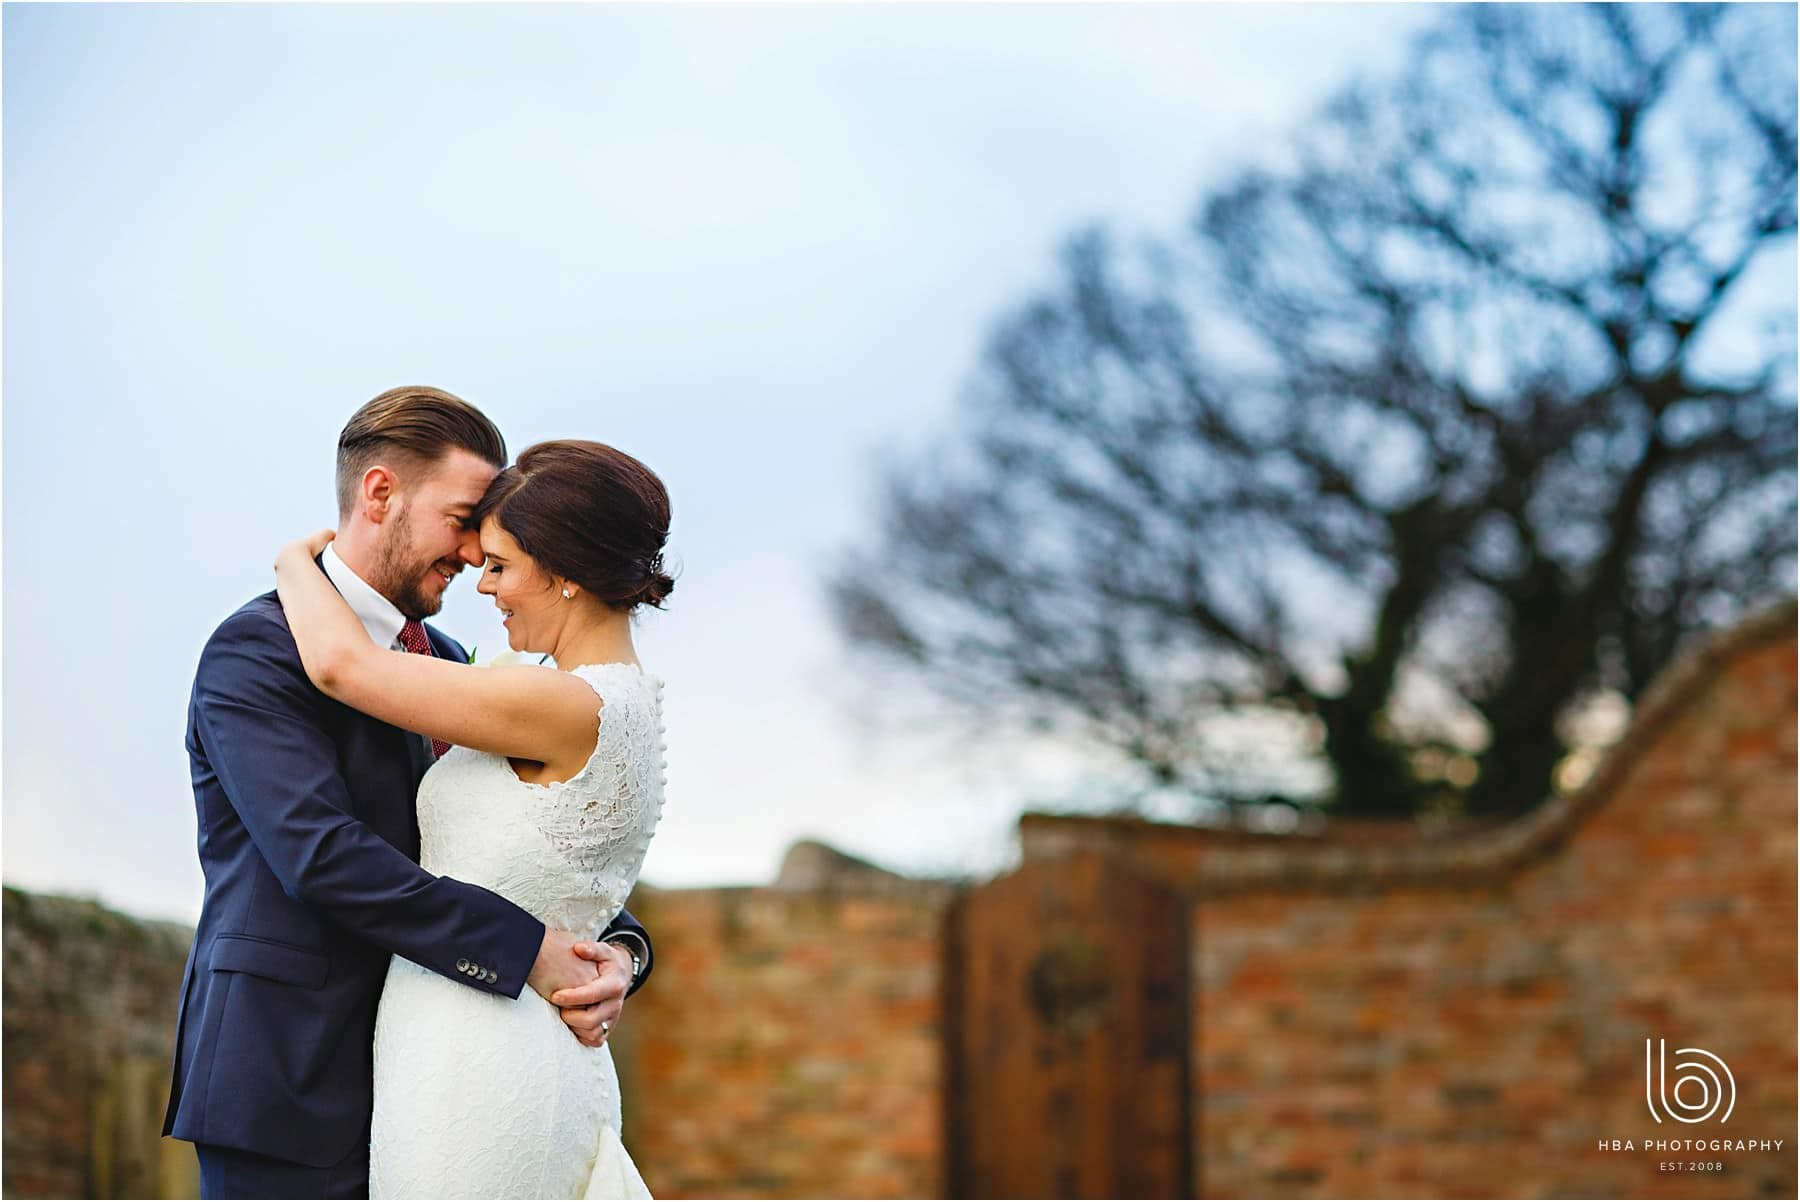 The bride and groom outside at Donnington Park farmhouse hugging together